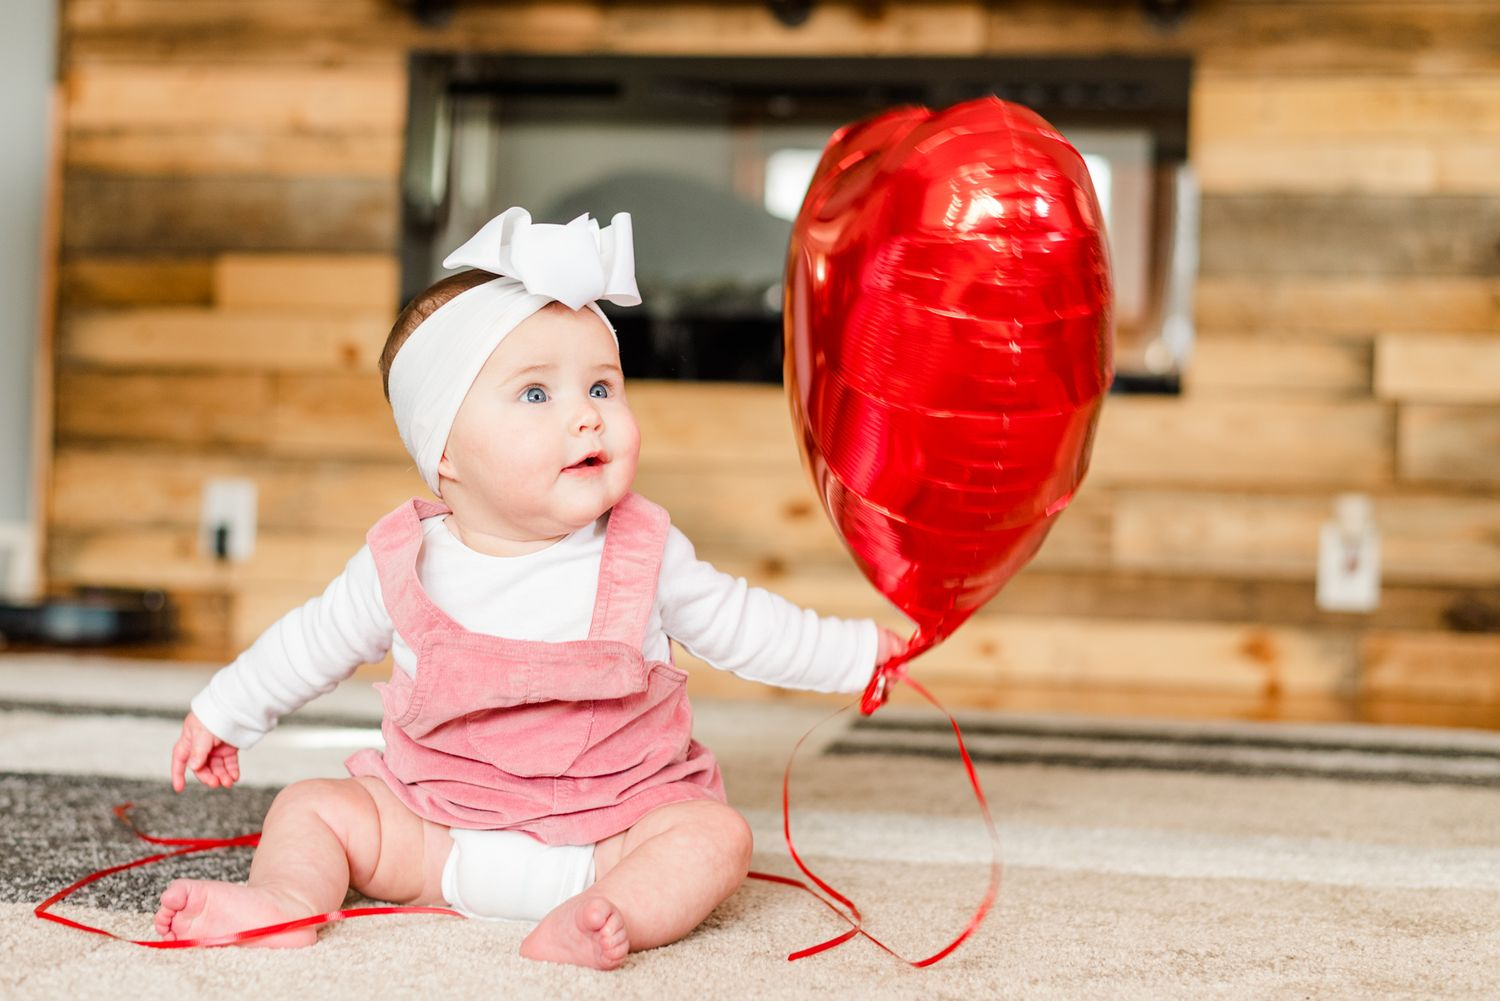 Lifestyle family photoshoot in the home with 6 month old baby holding a heart balloon in Gibsonia, Pennsylvania